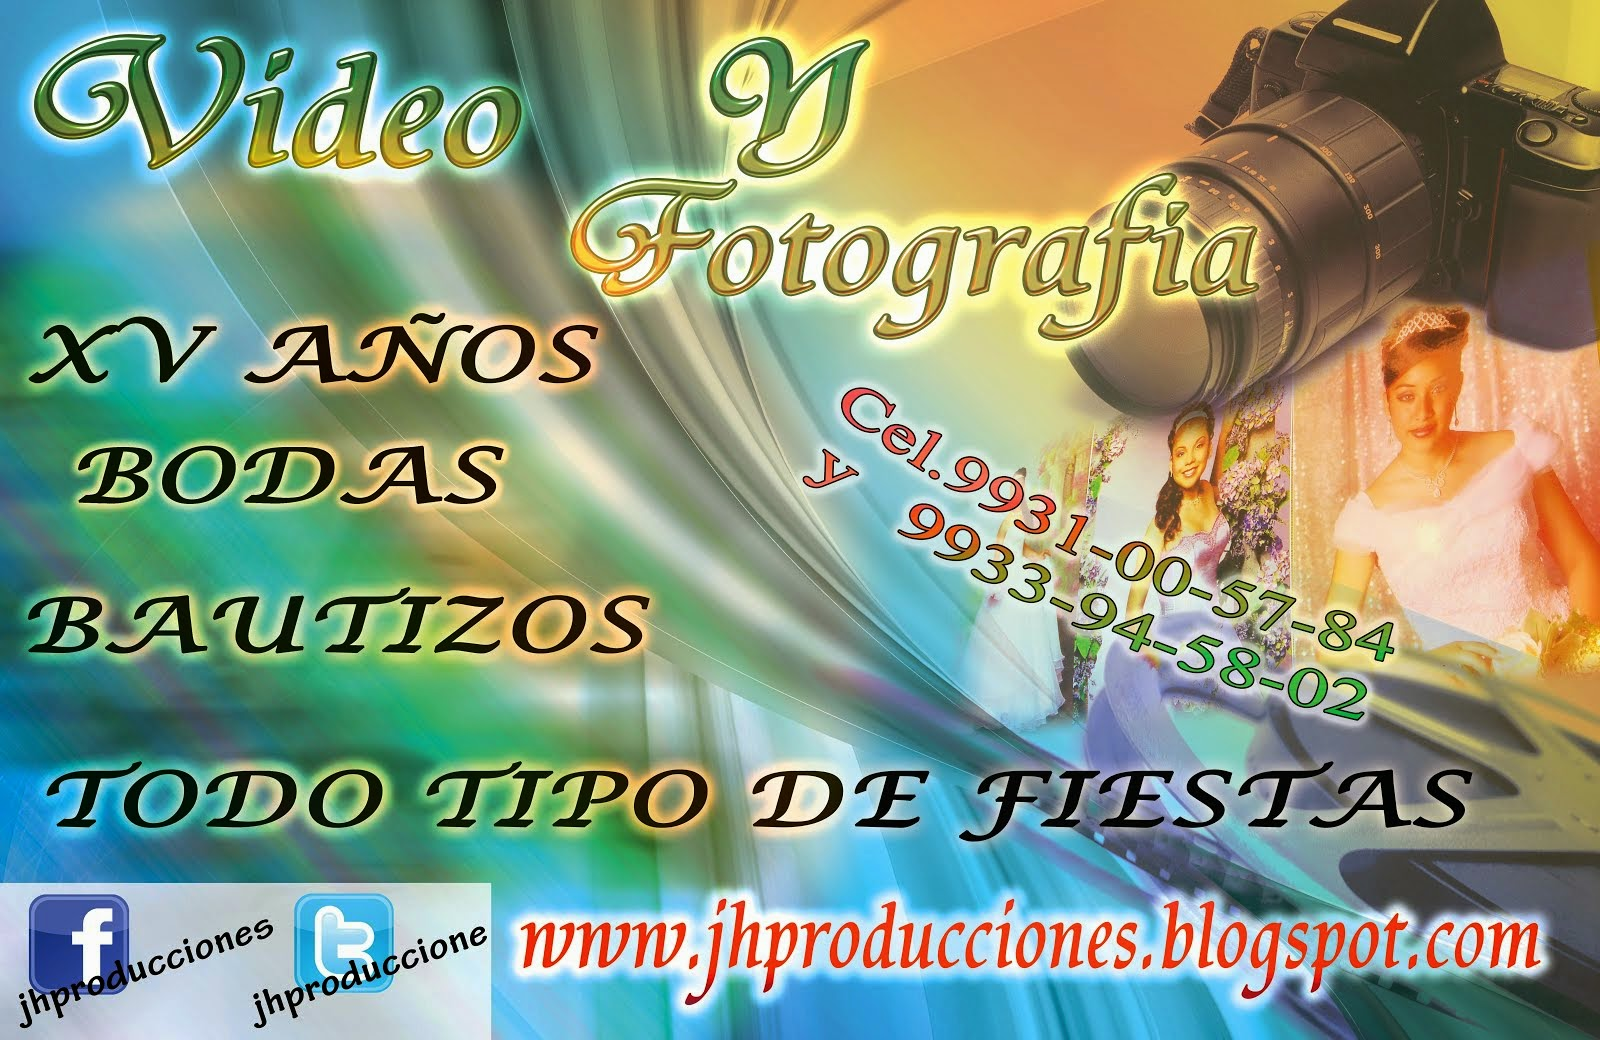 VIDEO Y FOTOGRAFIA PROFESIONAL